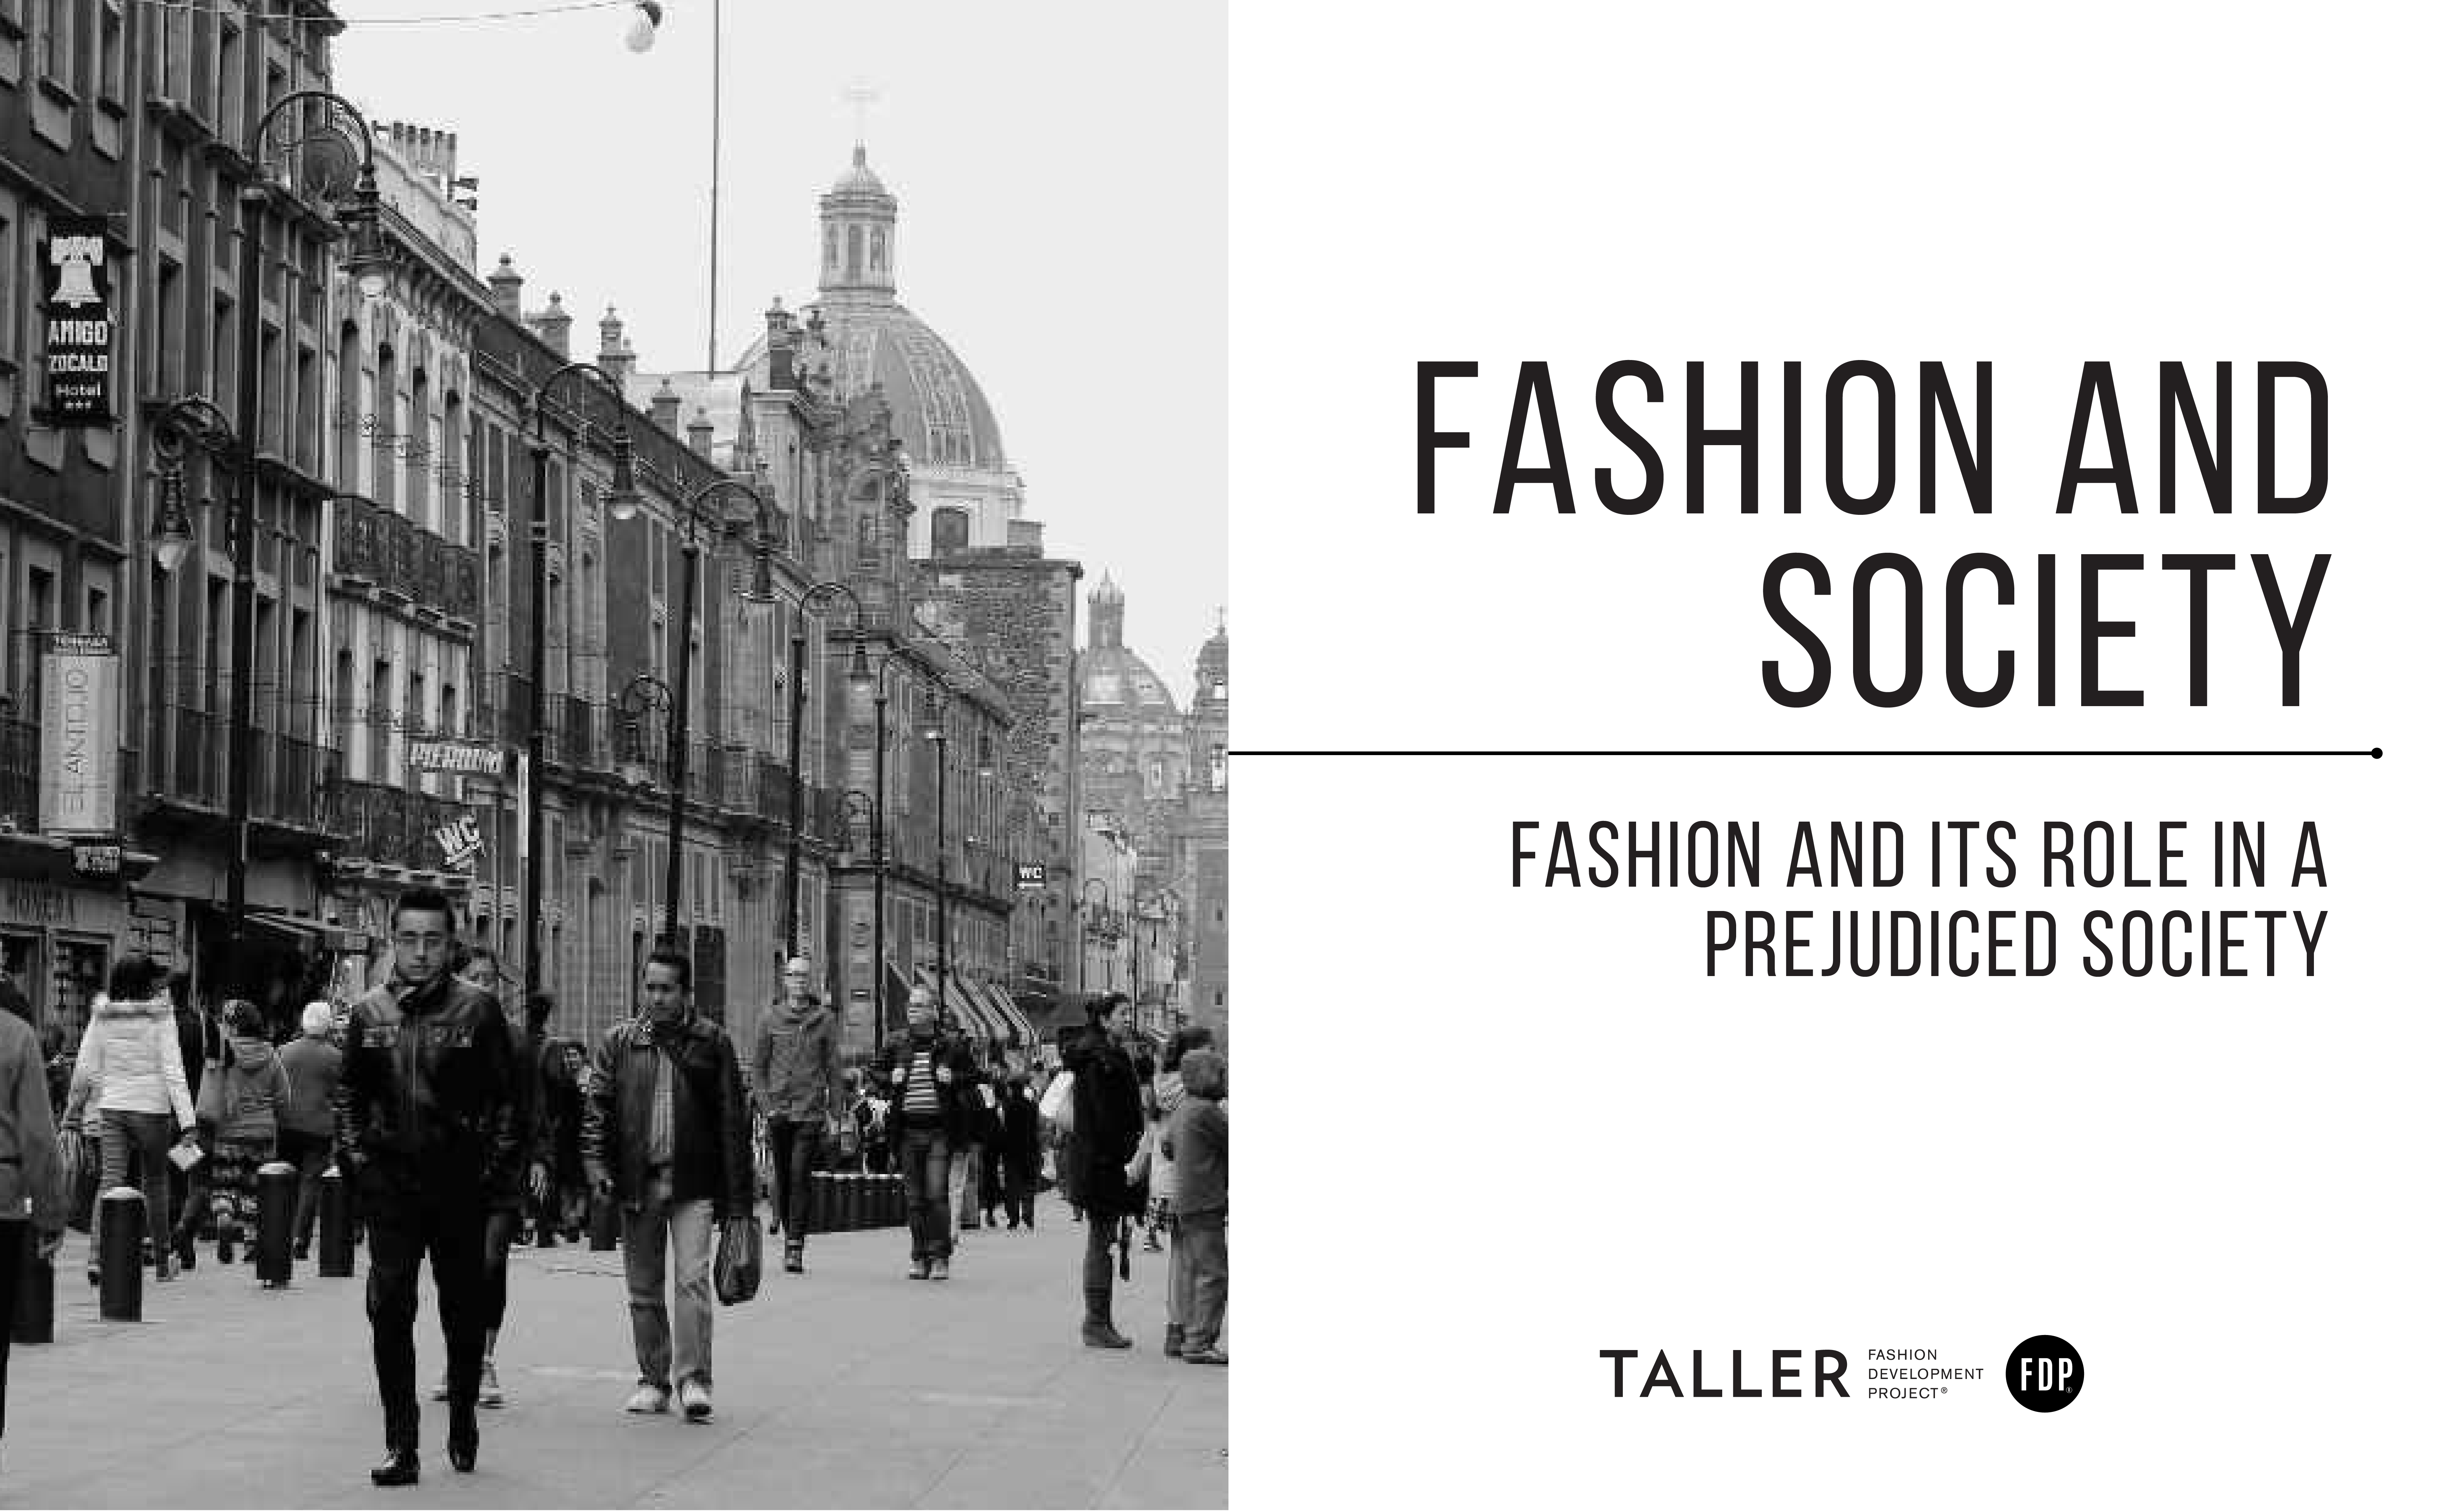 Fashion and Society: Fashion and its role in a prejudiced society.